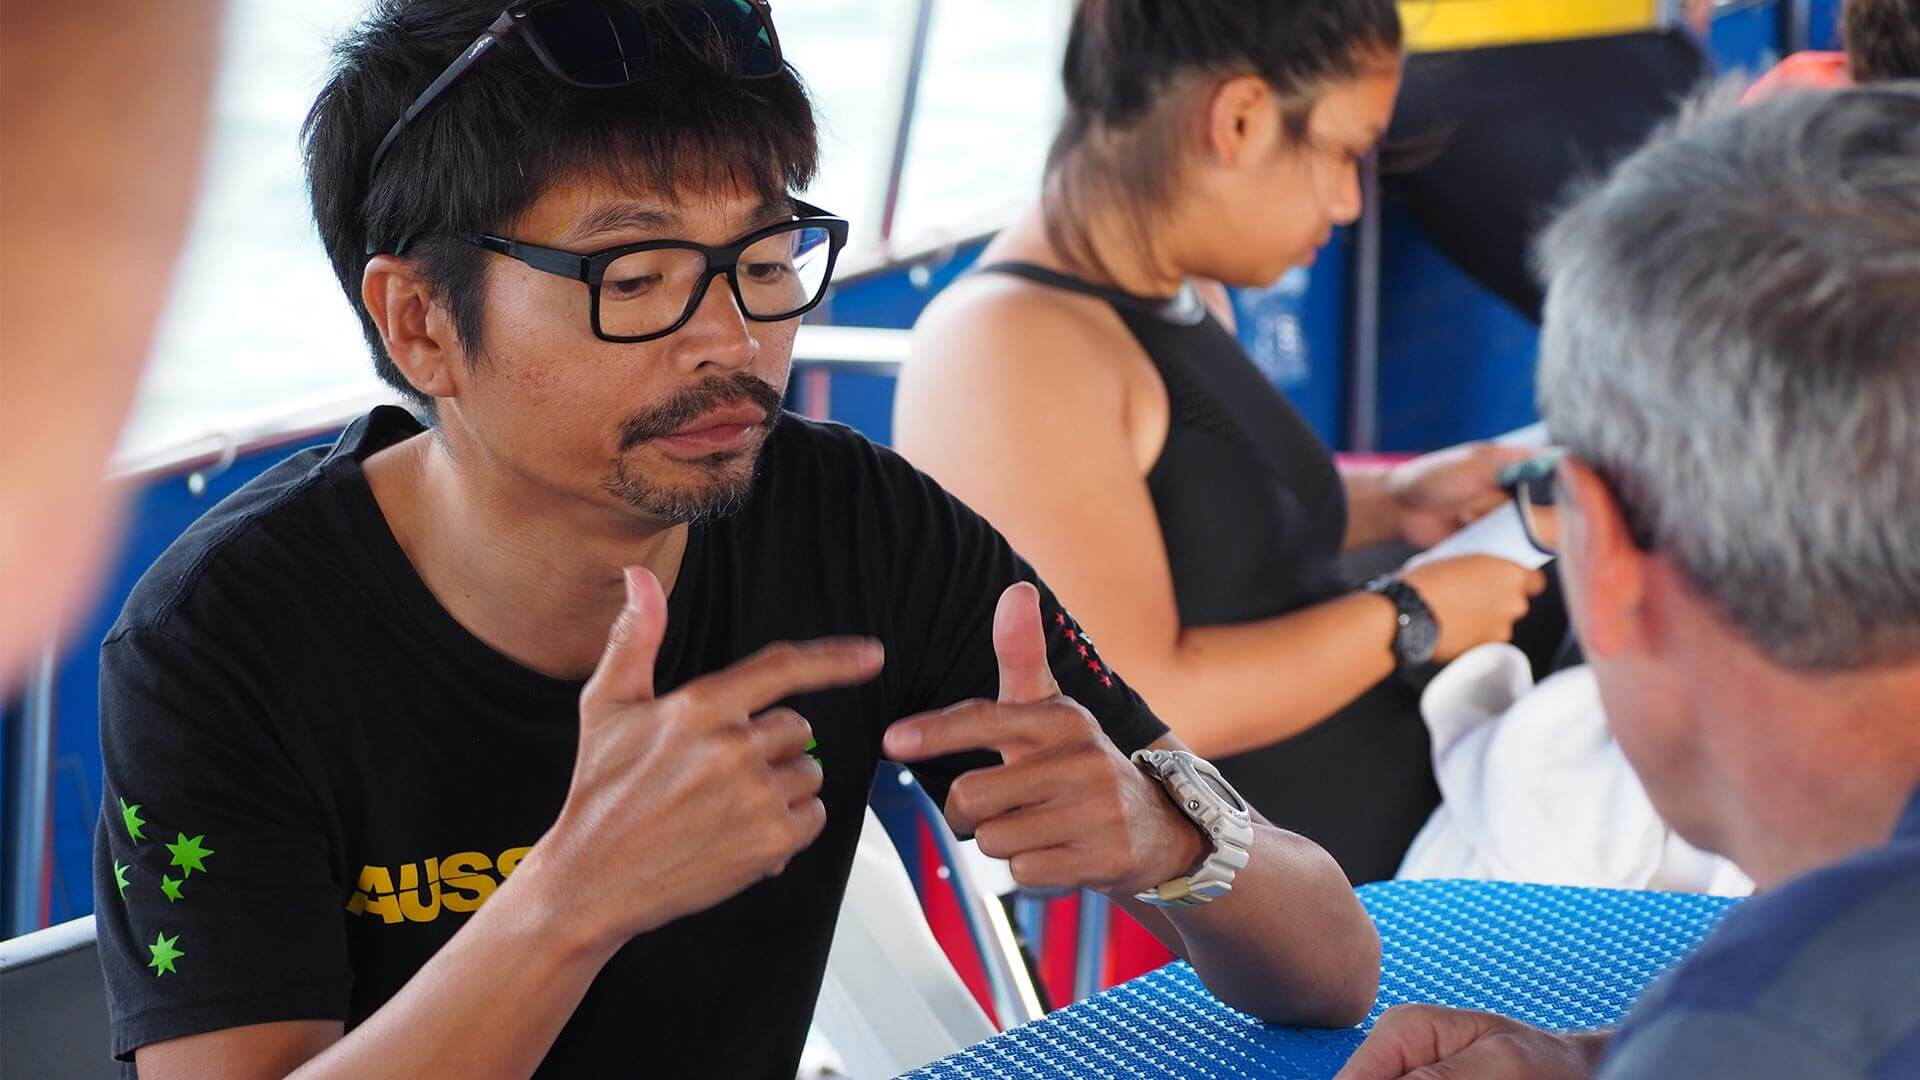 From Driver to PADI Instructor